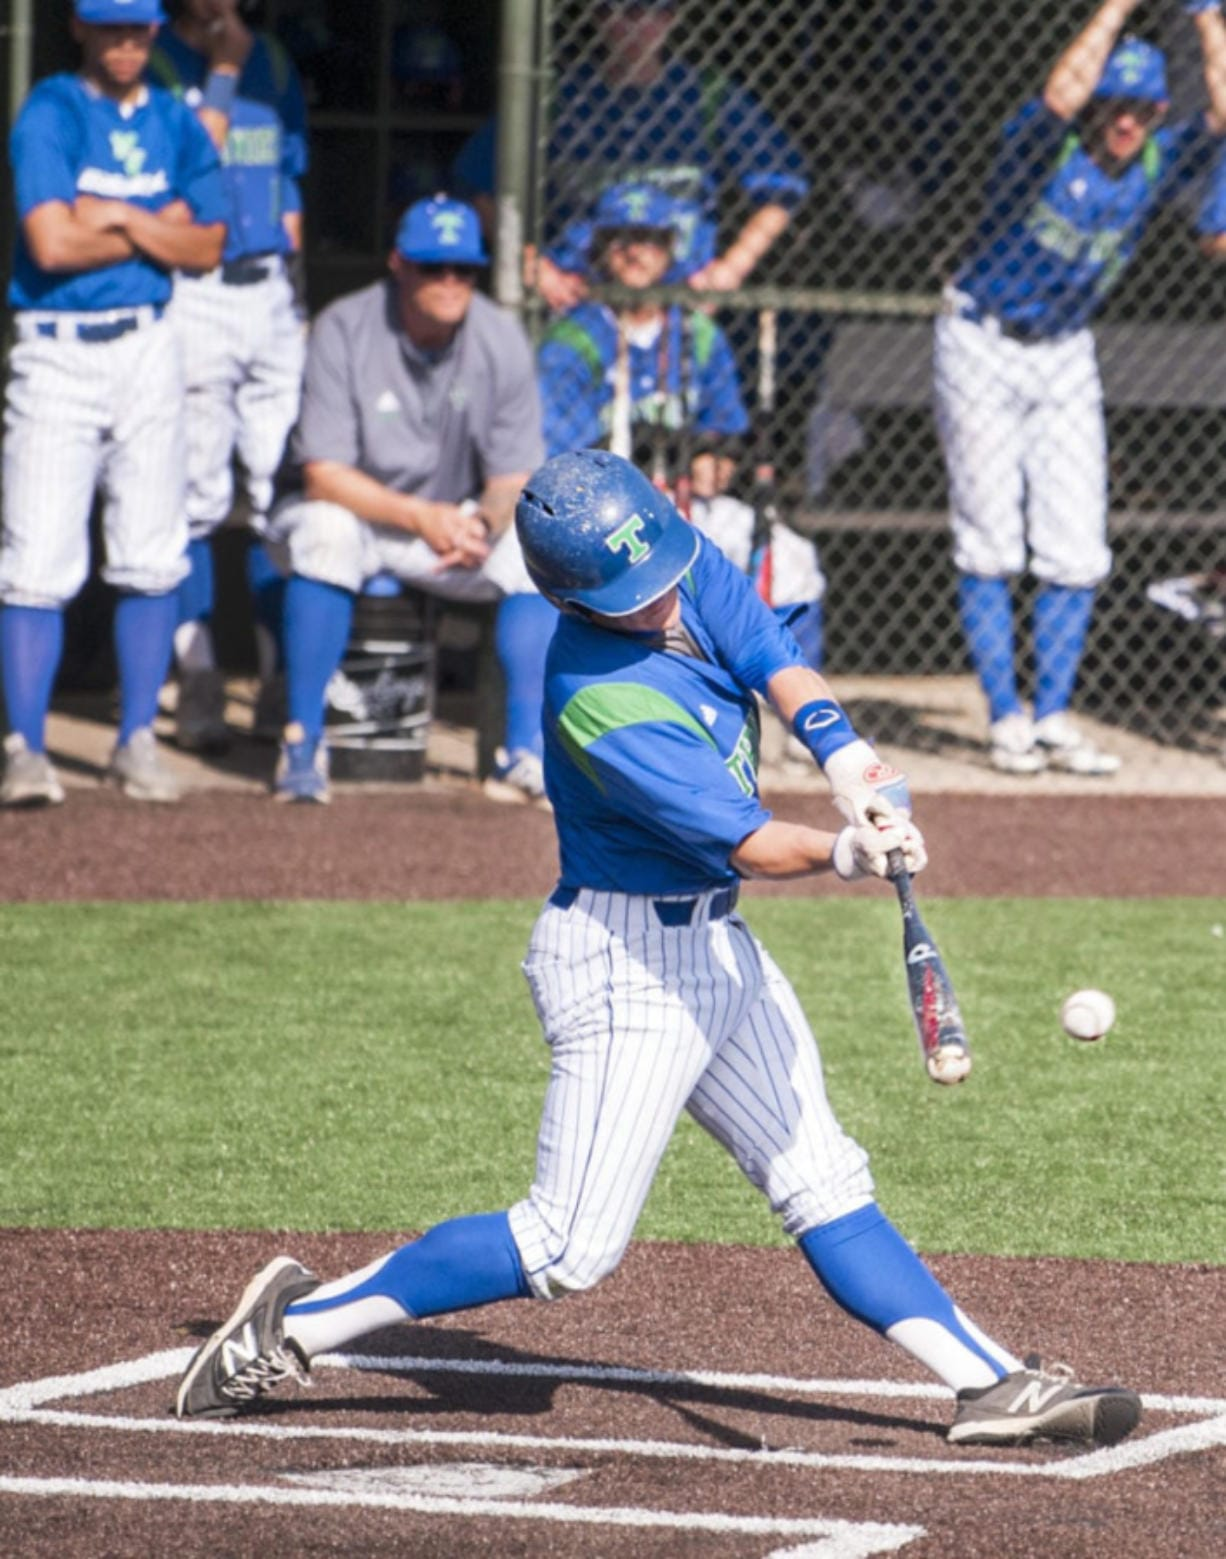 University of Portland signee Riley McCarthy spent the summer and fall playing in baseball tournaments and showcases, leading the Mountain View High School senior to conclude there is a safe and smart way for high school sports to return in the 2020-21 school year.